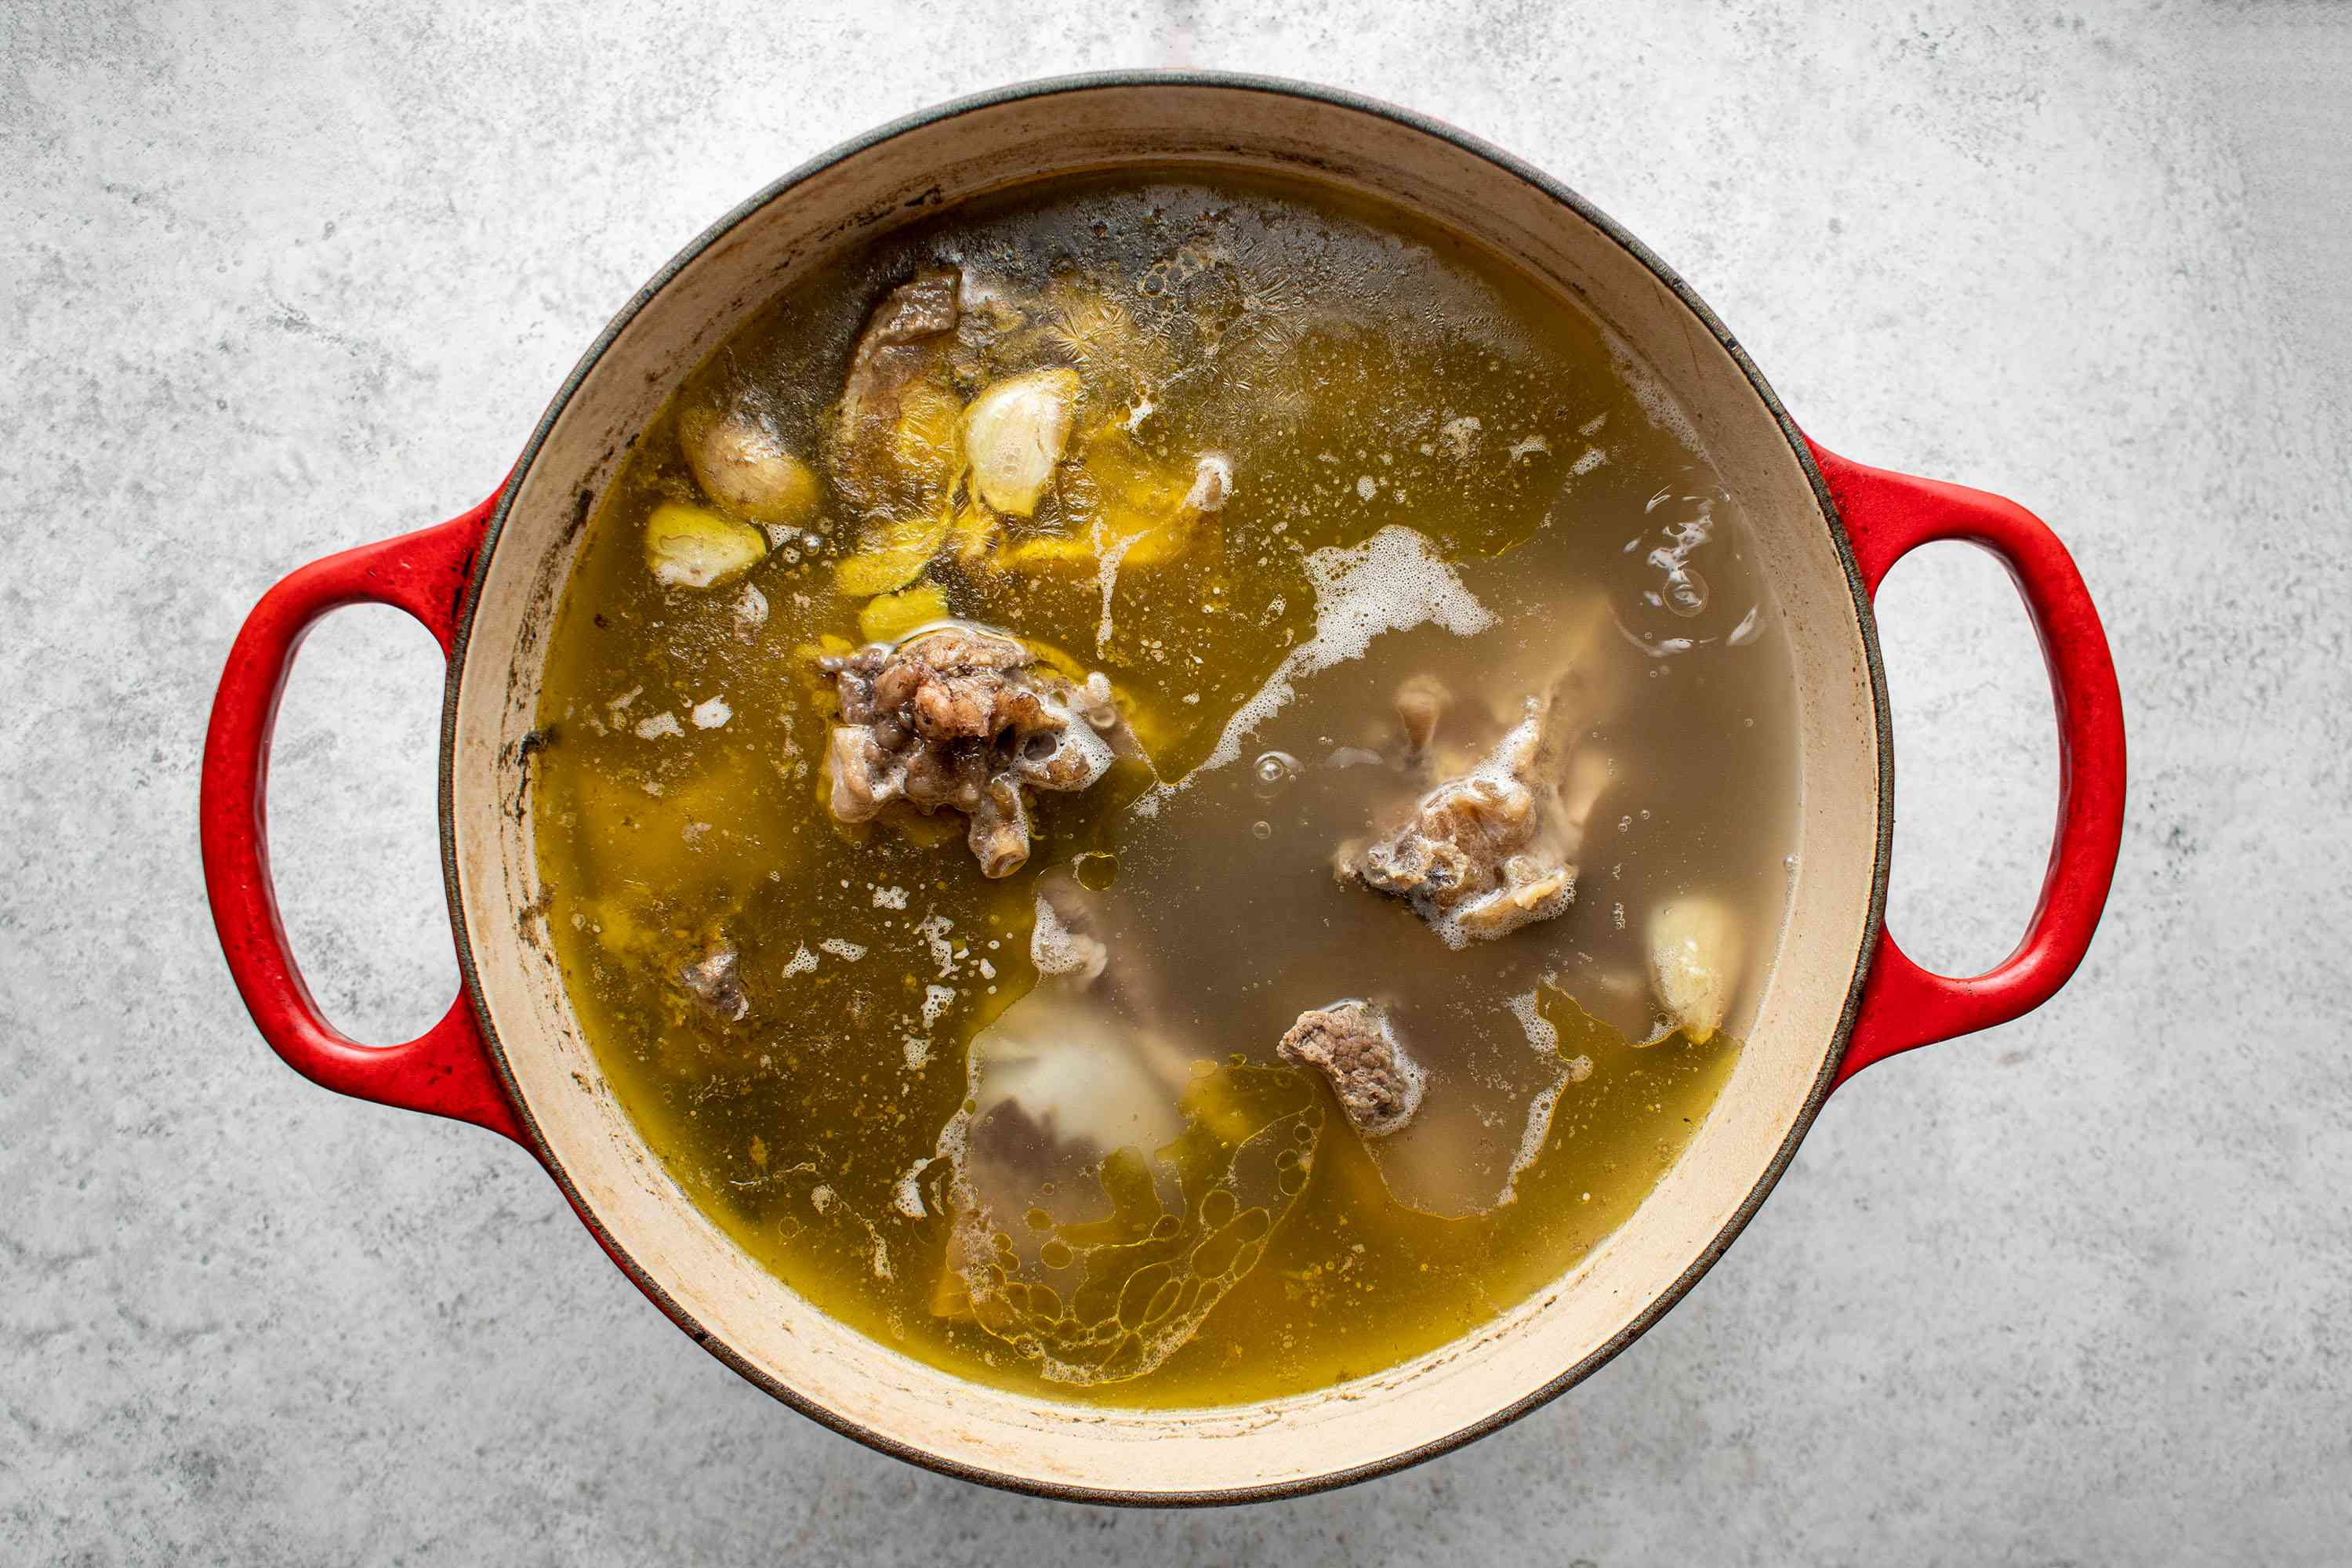 Add the ginger, garlic, cinnamon, cardamom, cloves, and peppercorns to the bones in the pot